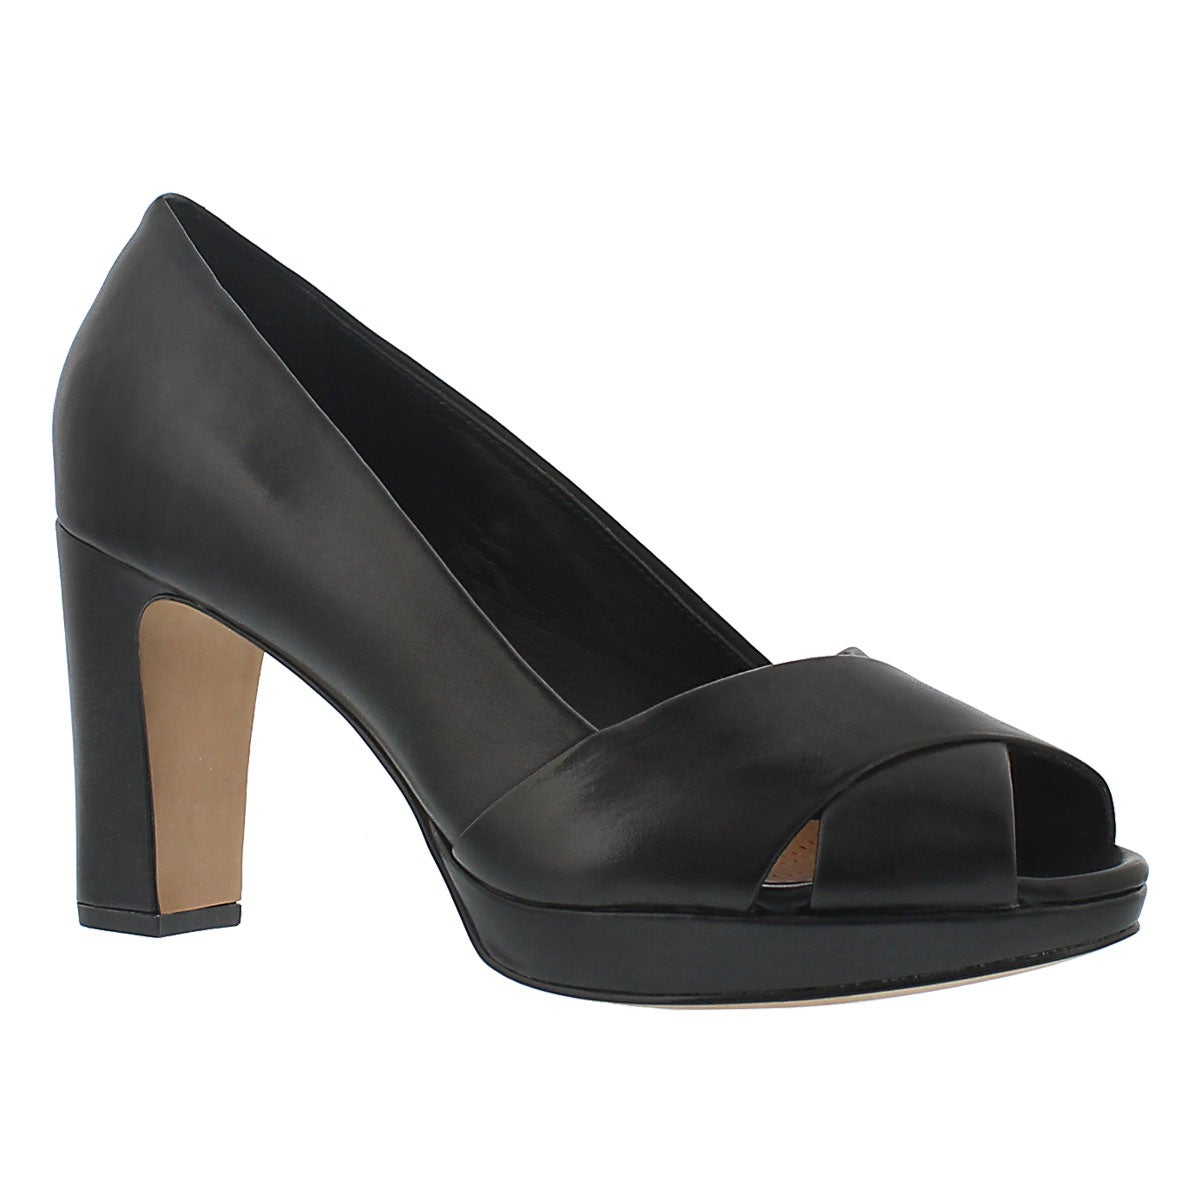 Lds Jenness Cloud black dress heel